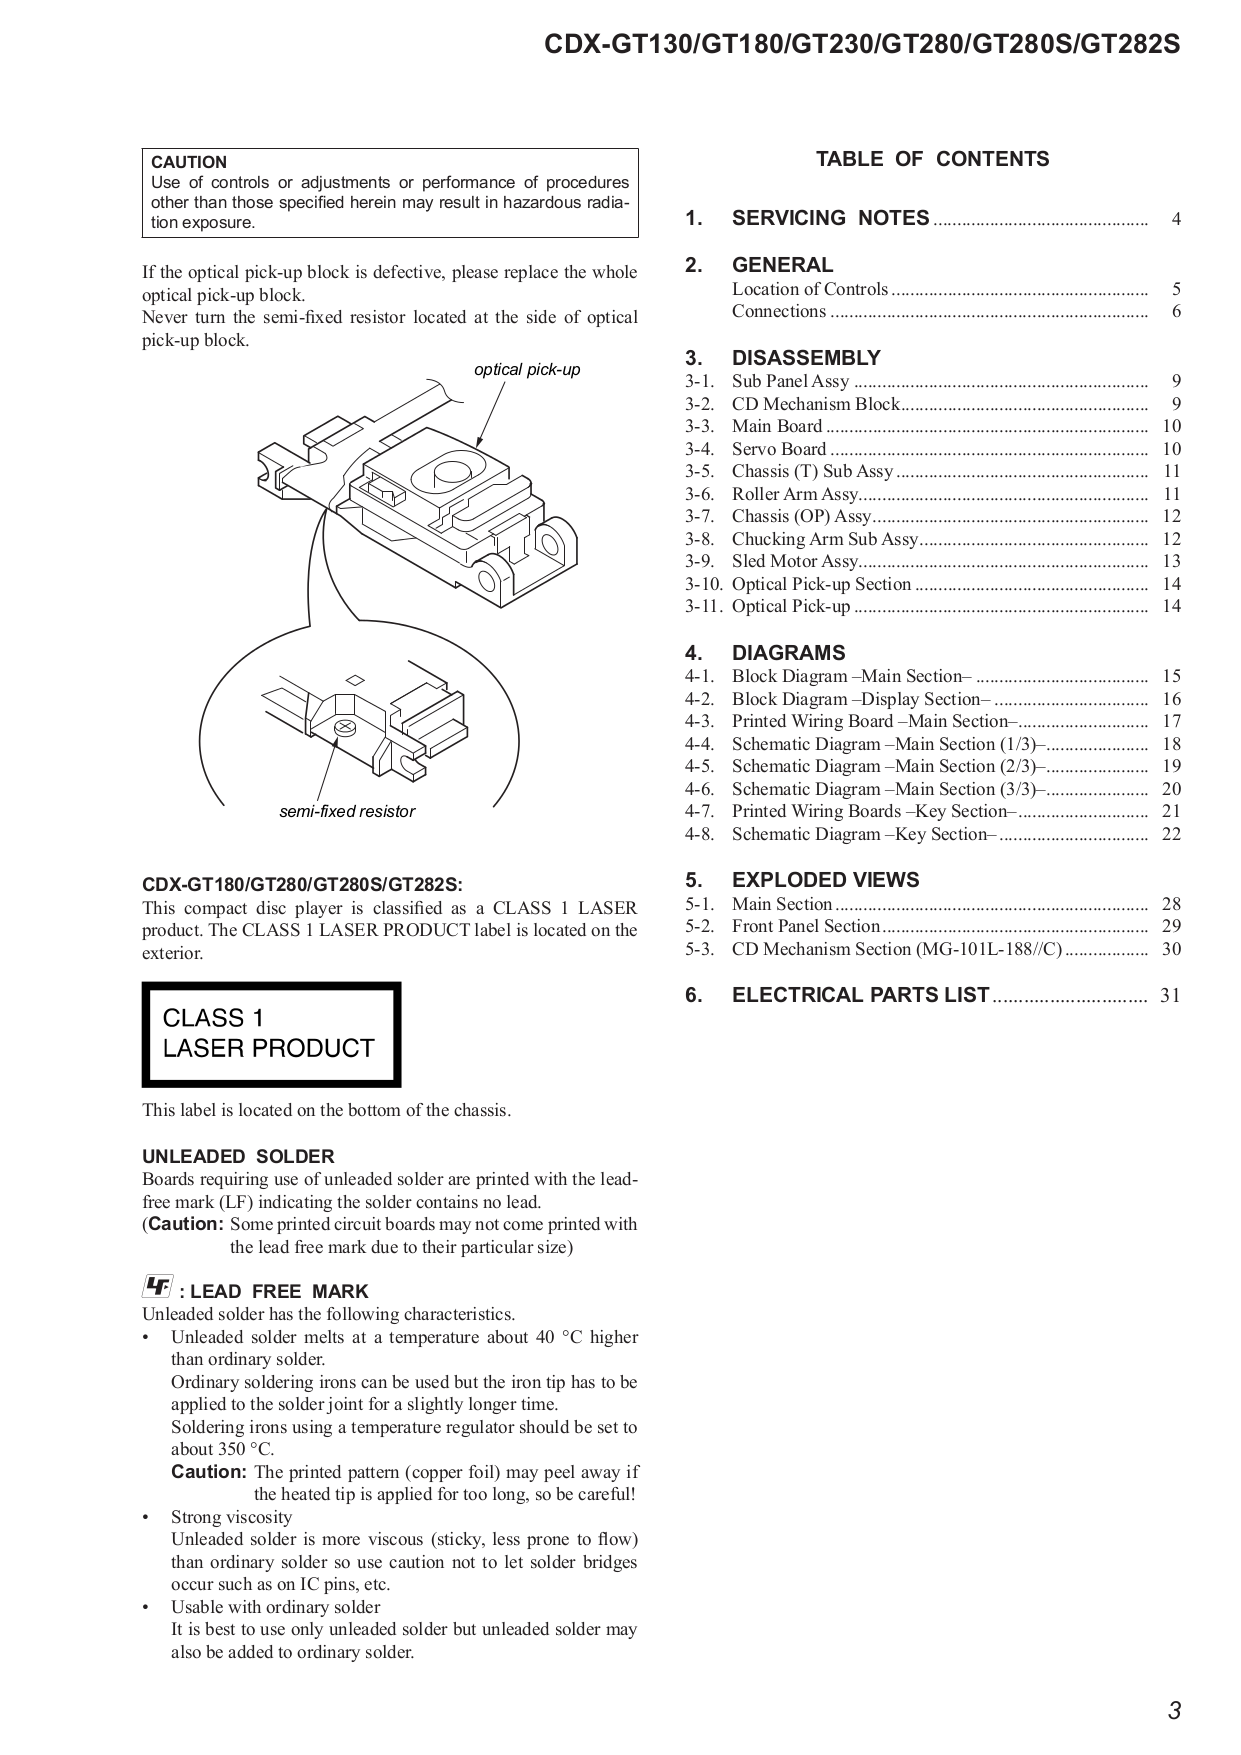 sony cdx gt33w wiring diagram sony image wiring pdf manual for sony car receiver xplod cdx gt33w on sony cdx gt33w wiring diagram